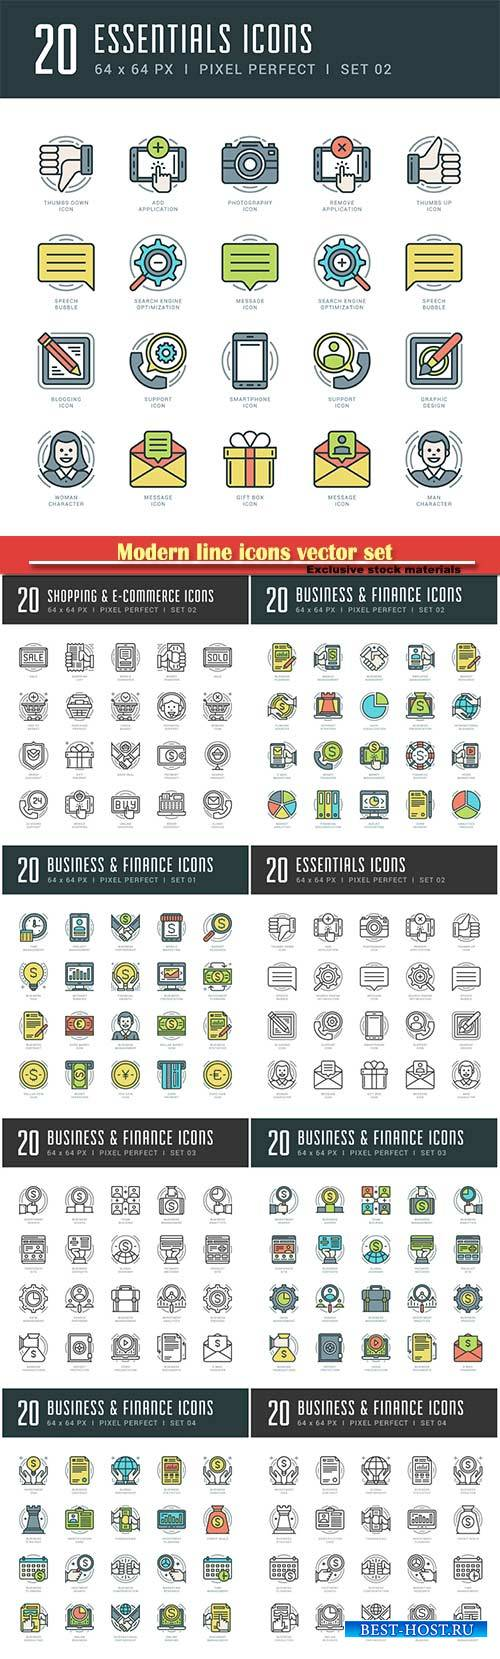 Modern line icons vector set